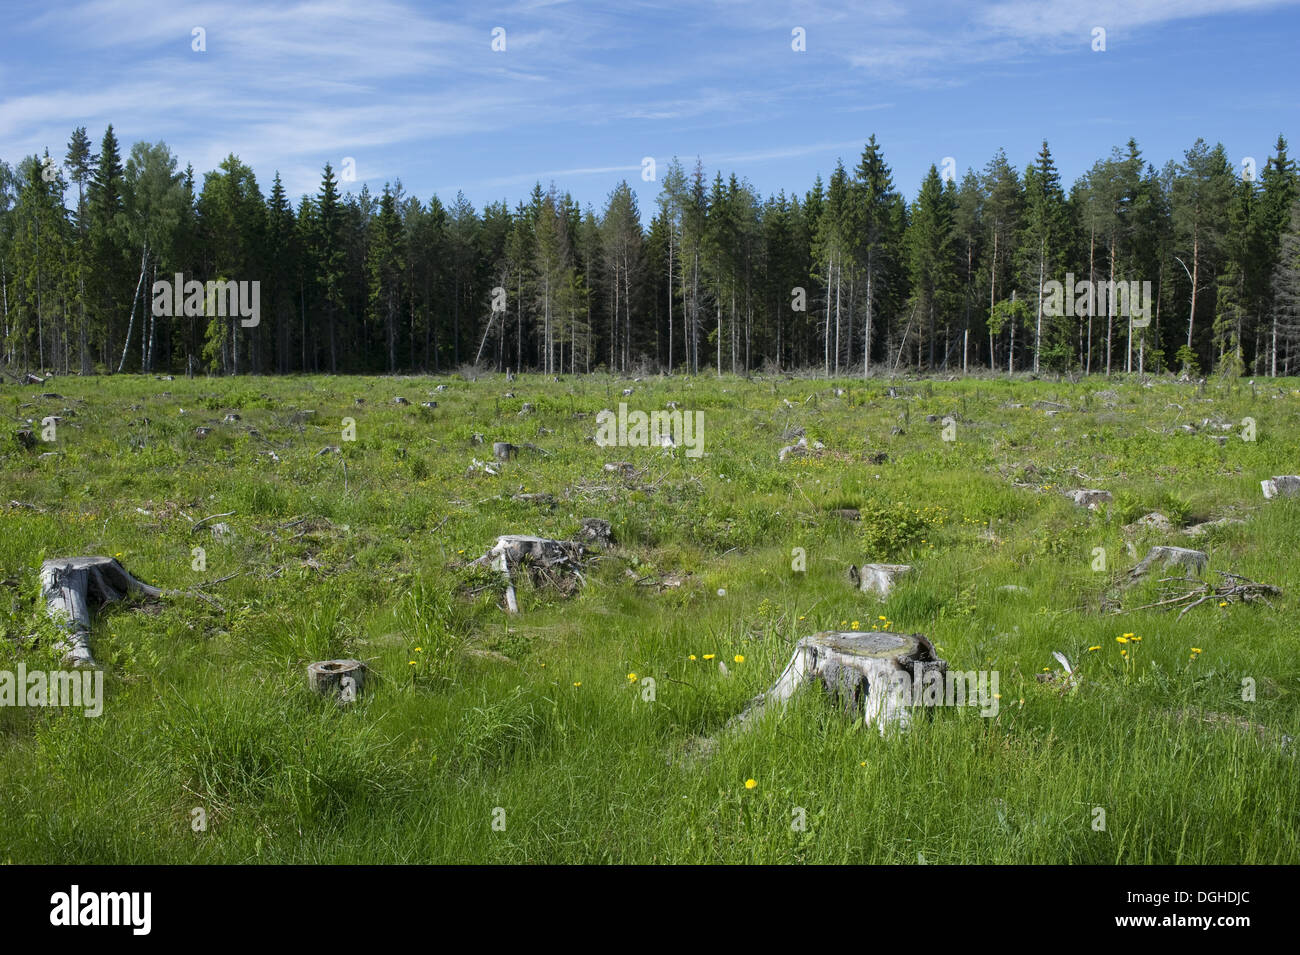 Clear-cut coniferous forest, with grass and wildflowers growing amongst stumps, Sweden, june - Stock Image